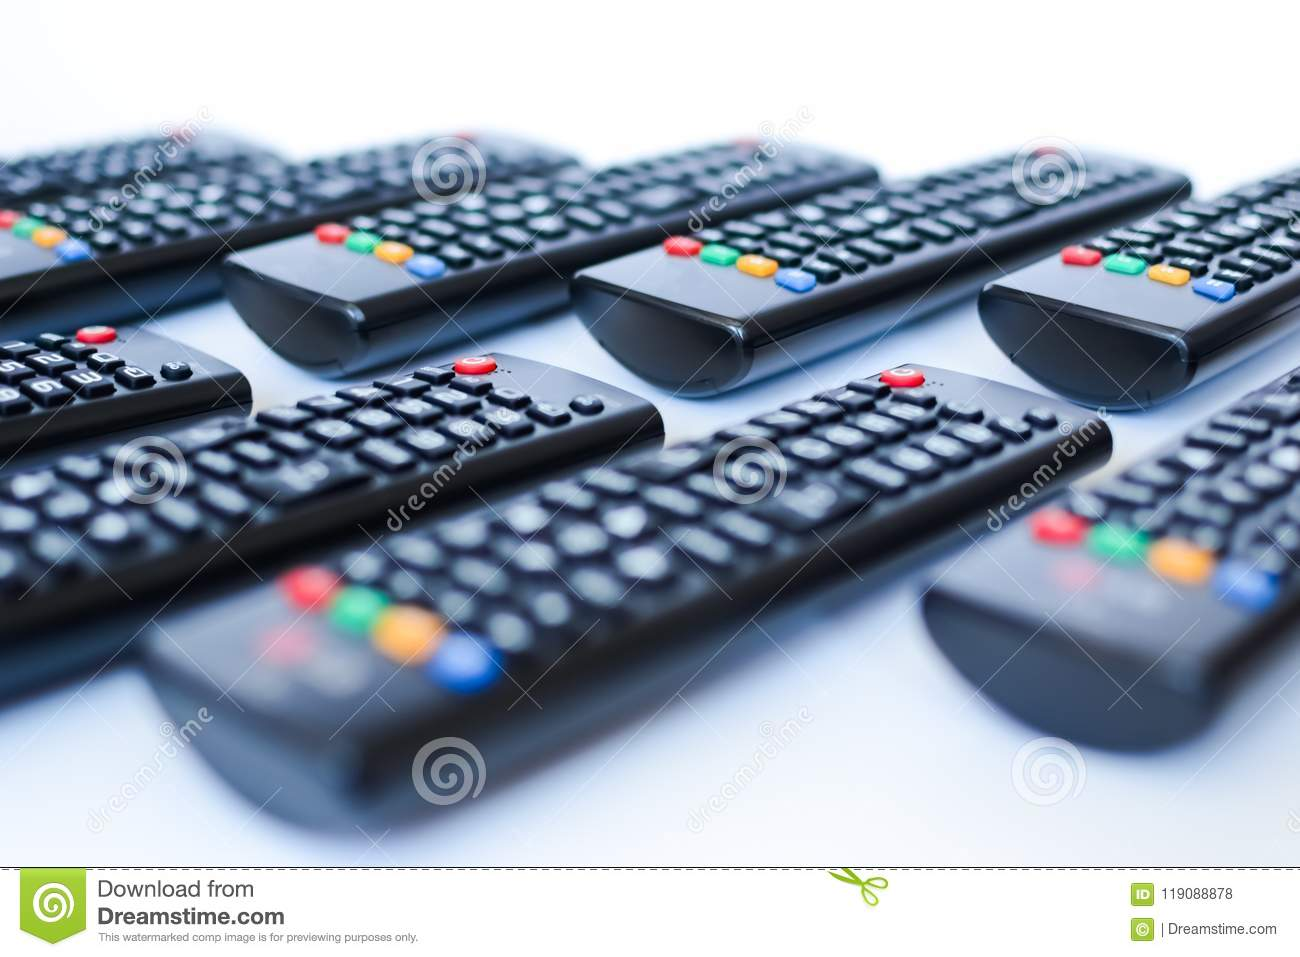 Especially heavily blurred black remote controls for the TV on a white background